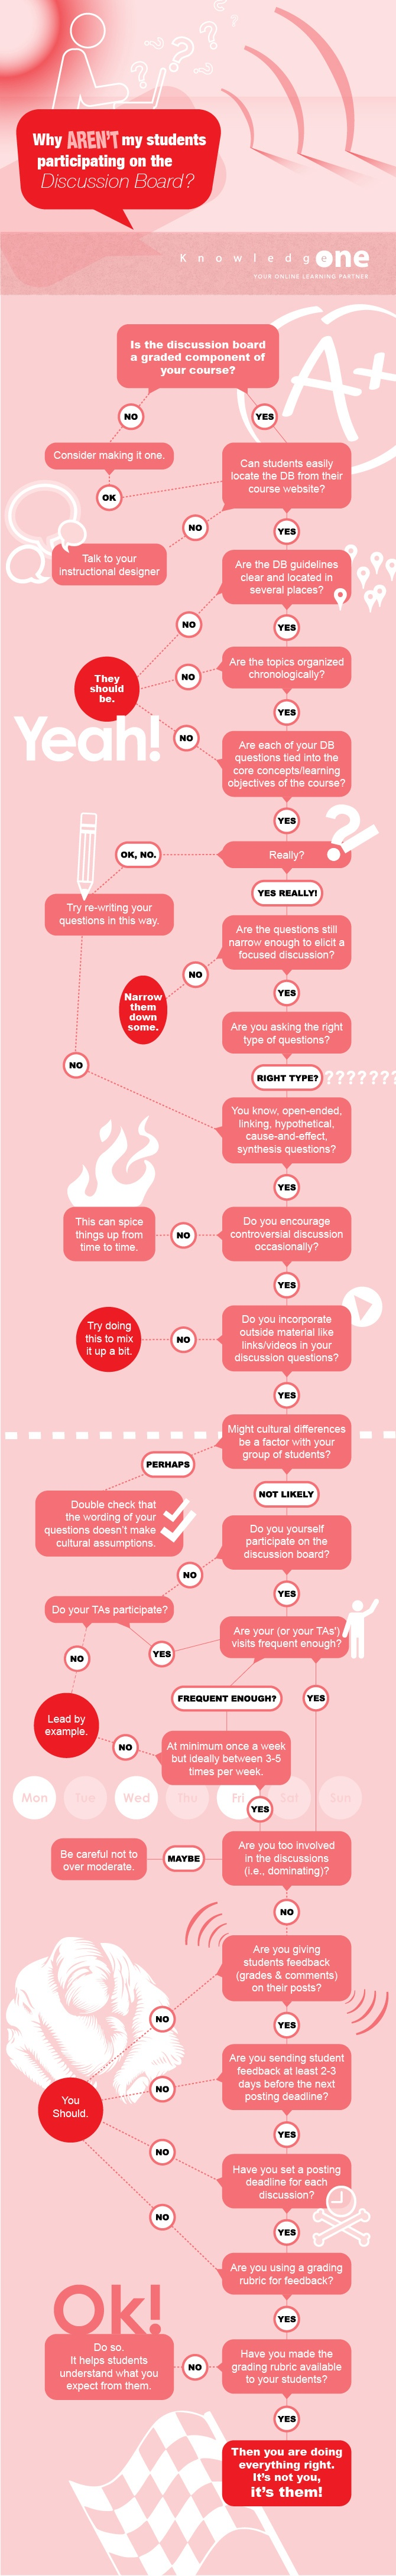 How To Make Your Students Participate On The Discussion Board Infographic